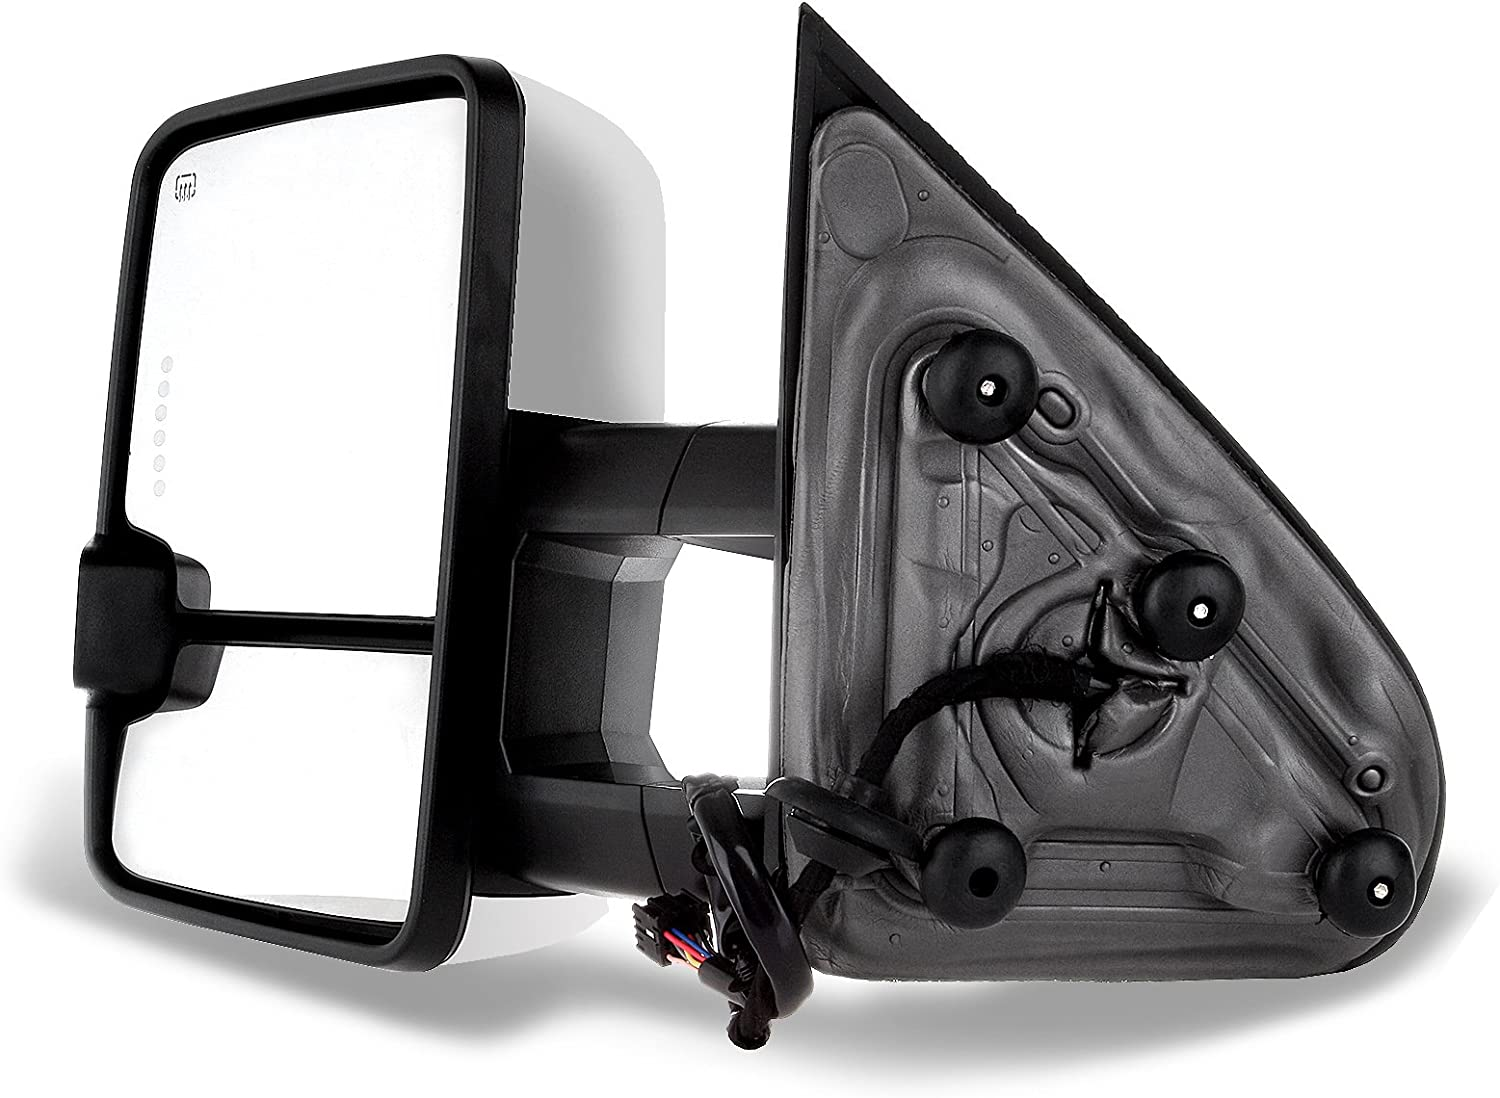 FINDAUTO Rear View Tow Mirrors Compatible with 2014-2018 Chevy GMC 1500 2015-2019 Chevy GMC 2500 HD 3500 HD Towing Mirrors Left Right Side Power Heated with Turn Signal Light Chrome